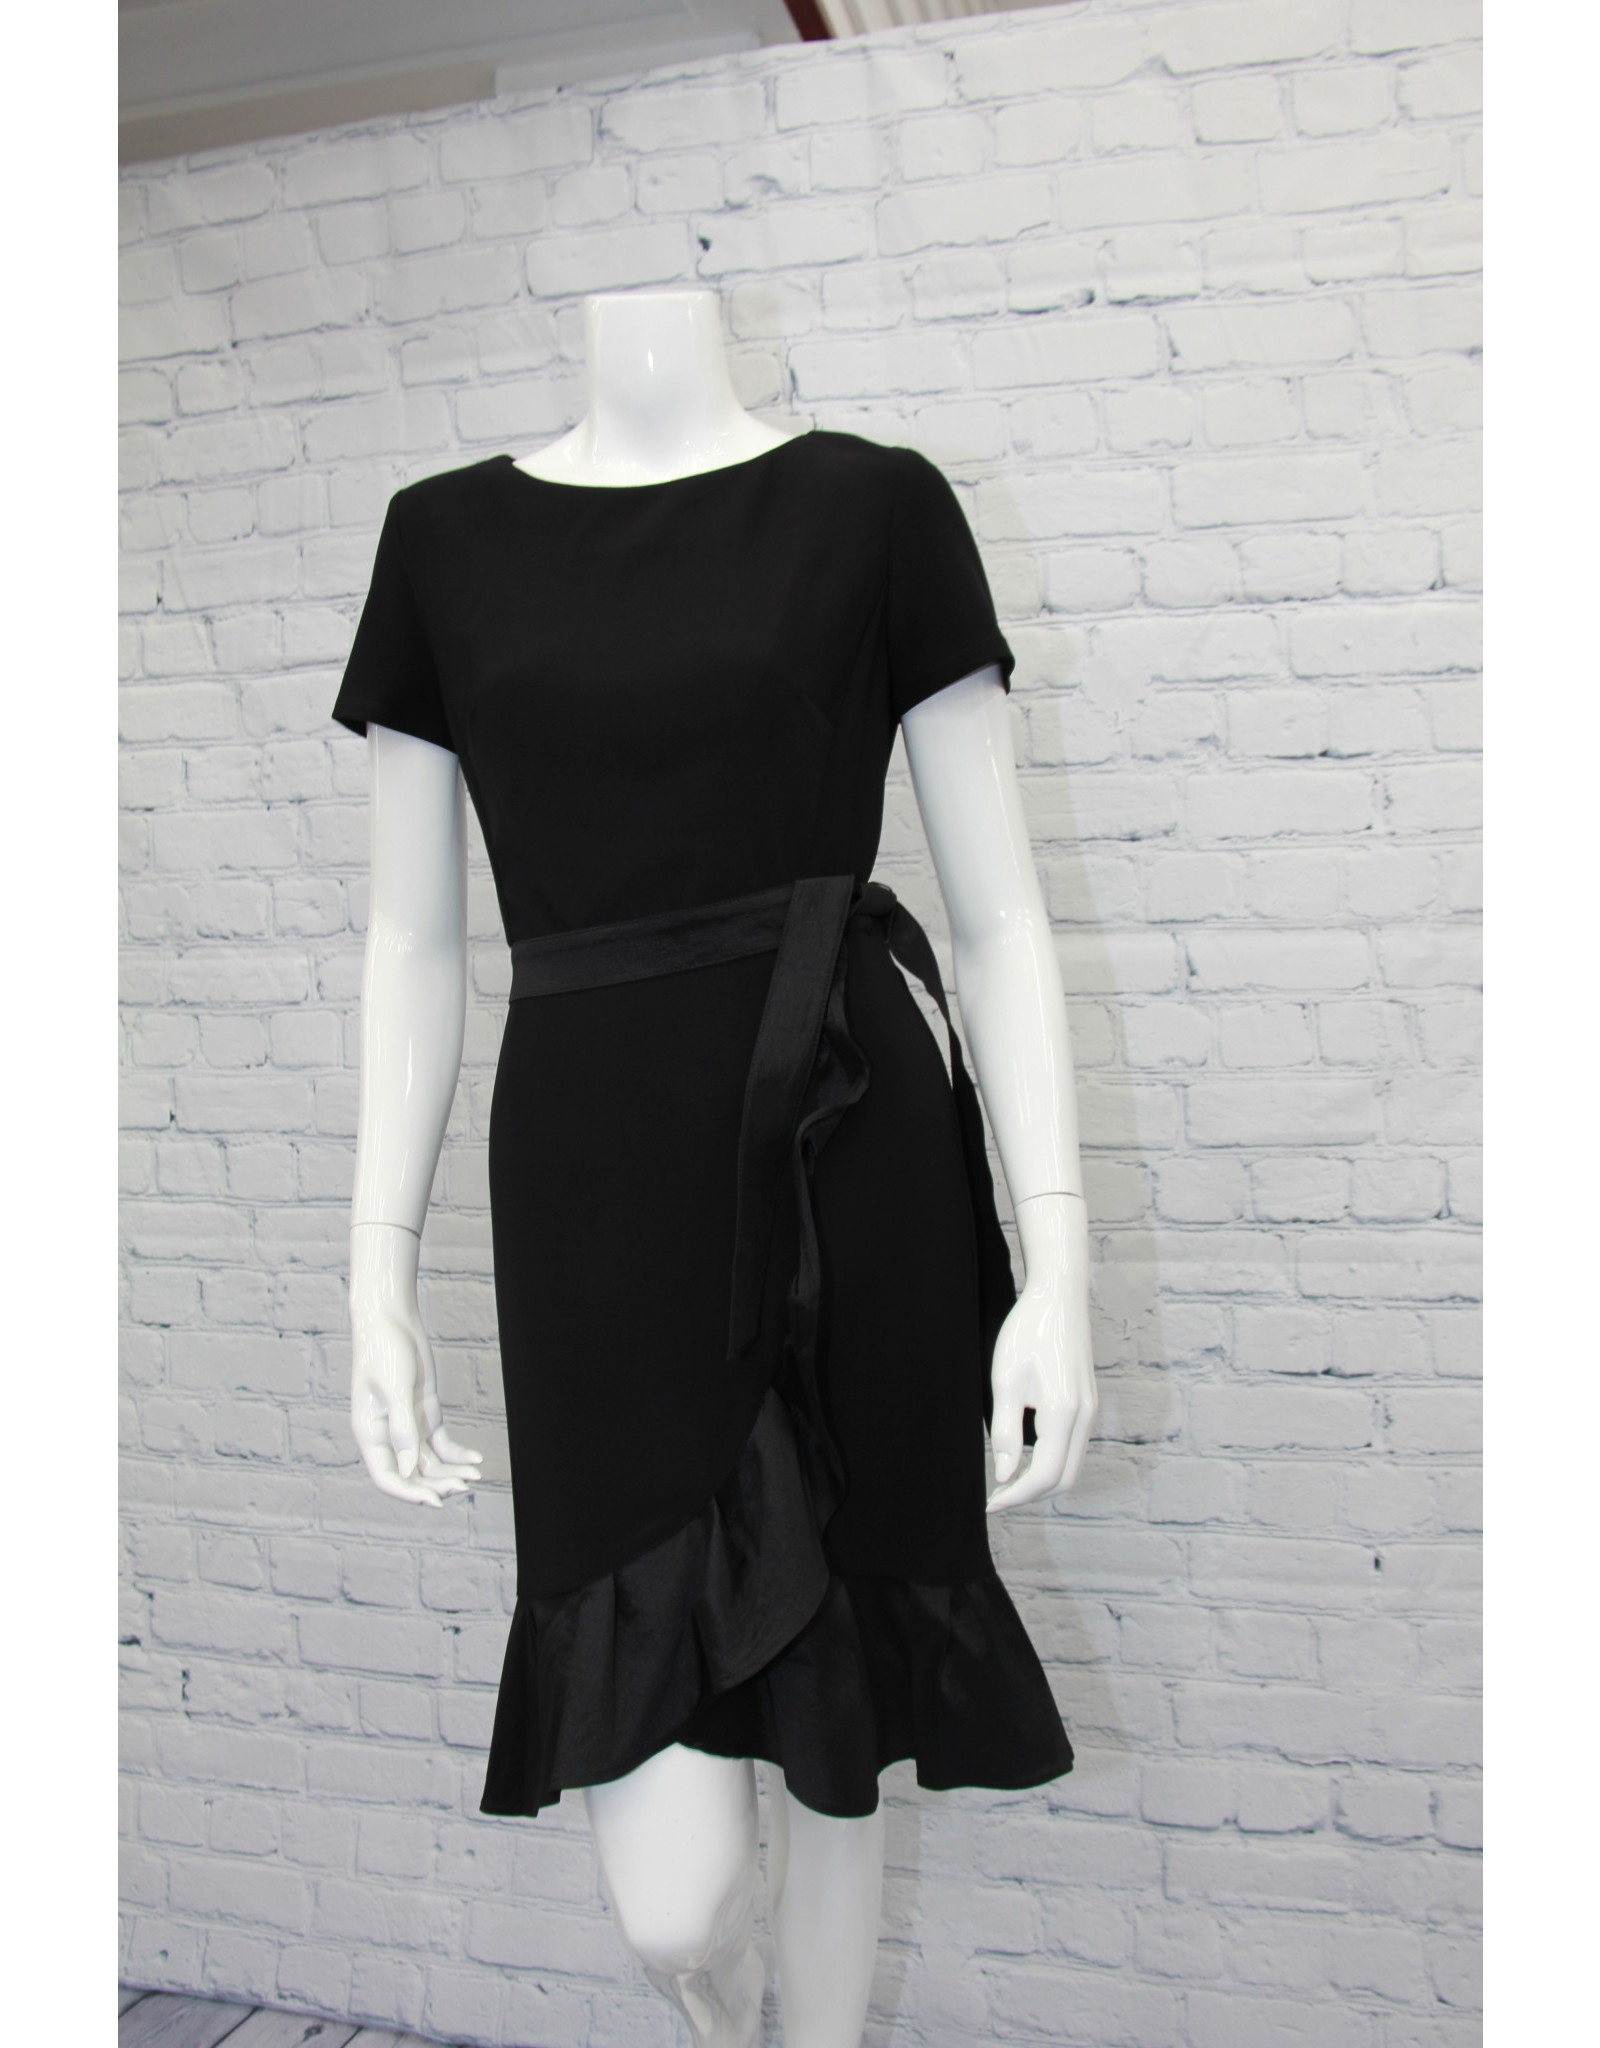 Frank Lyman Frank Lyman Black Dress